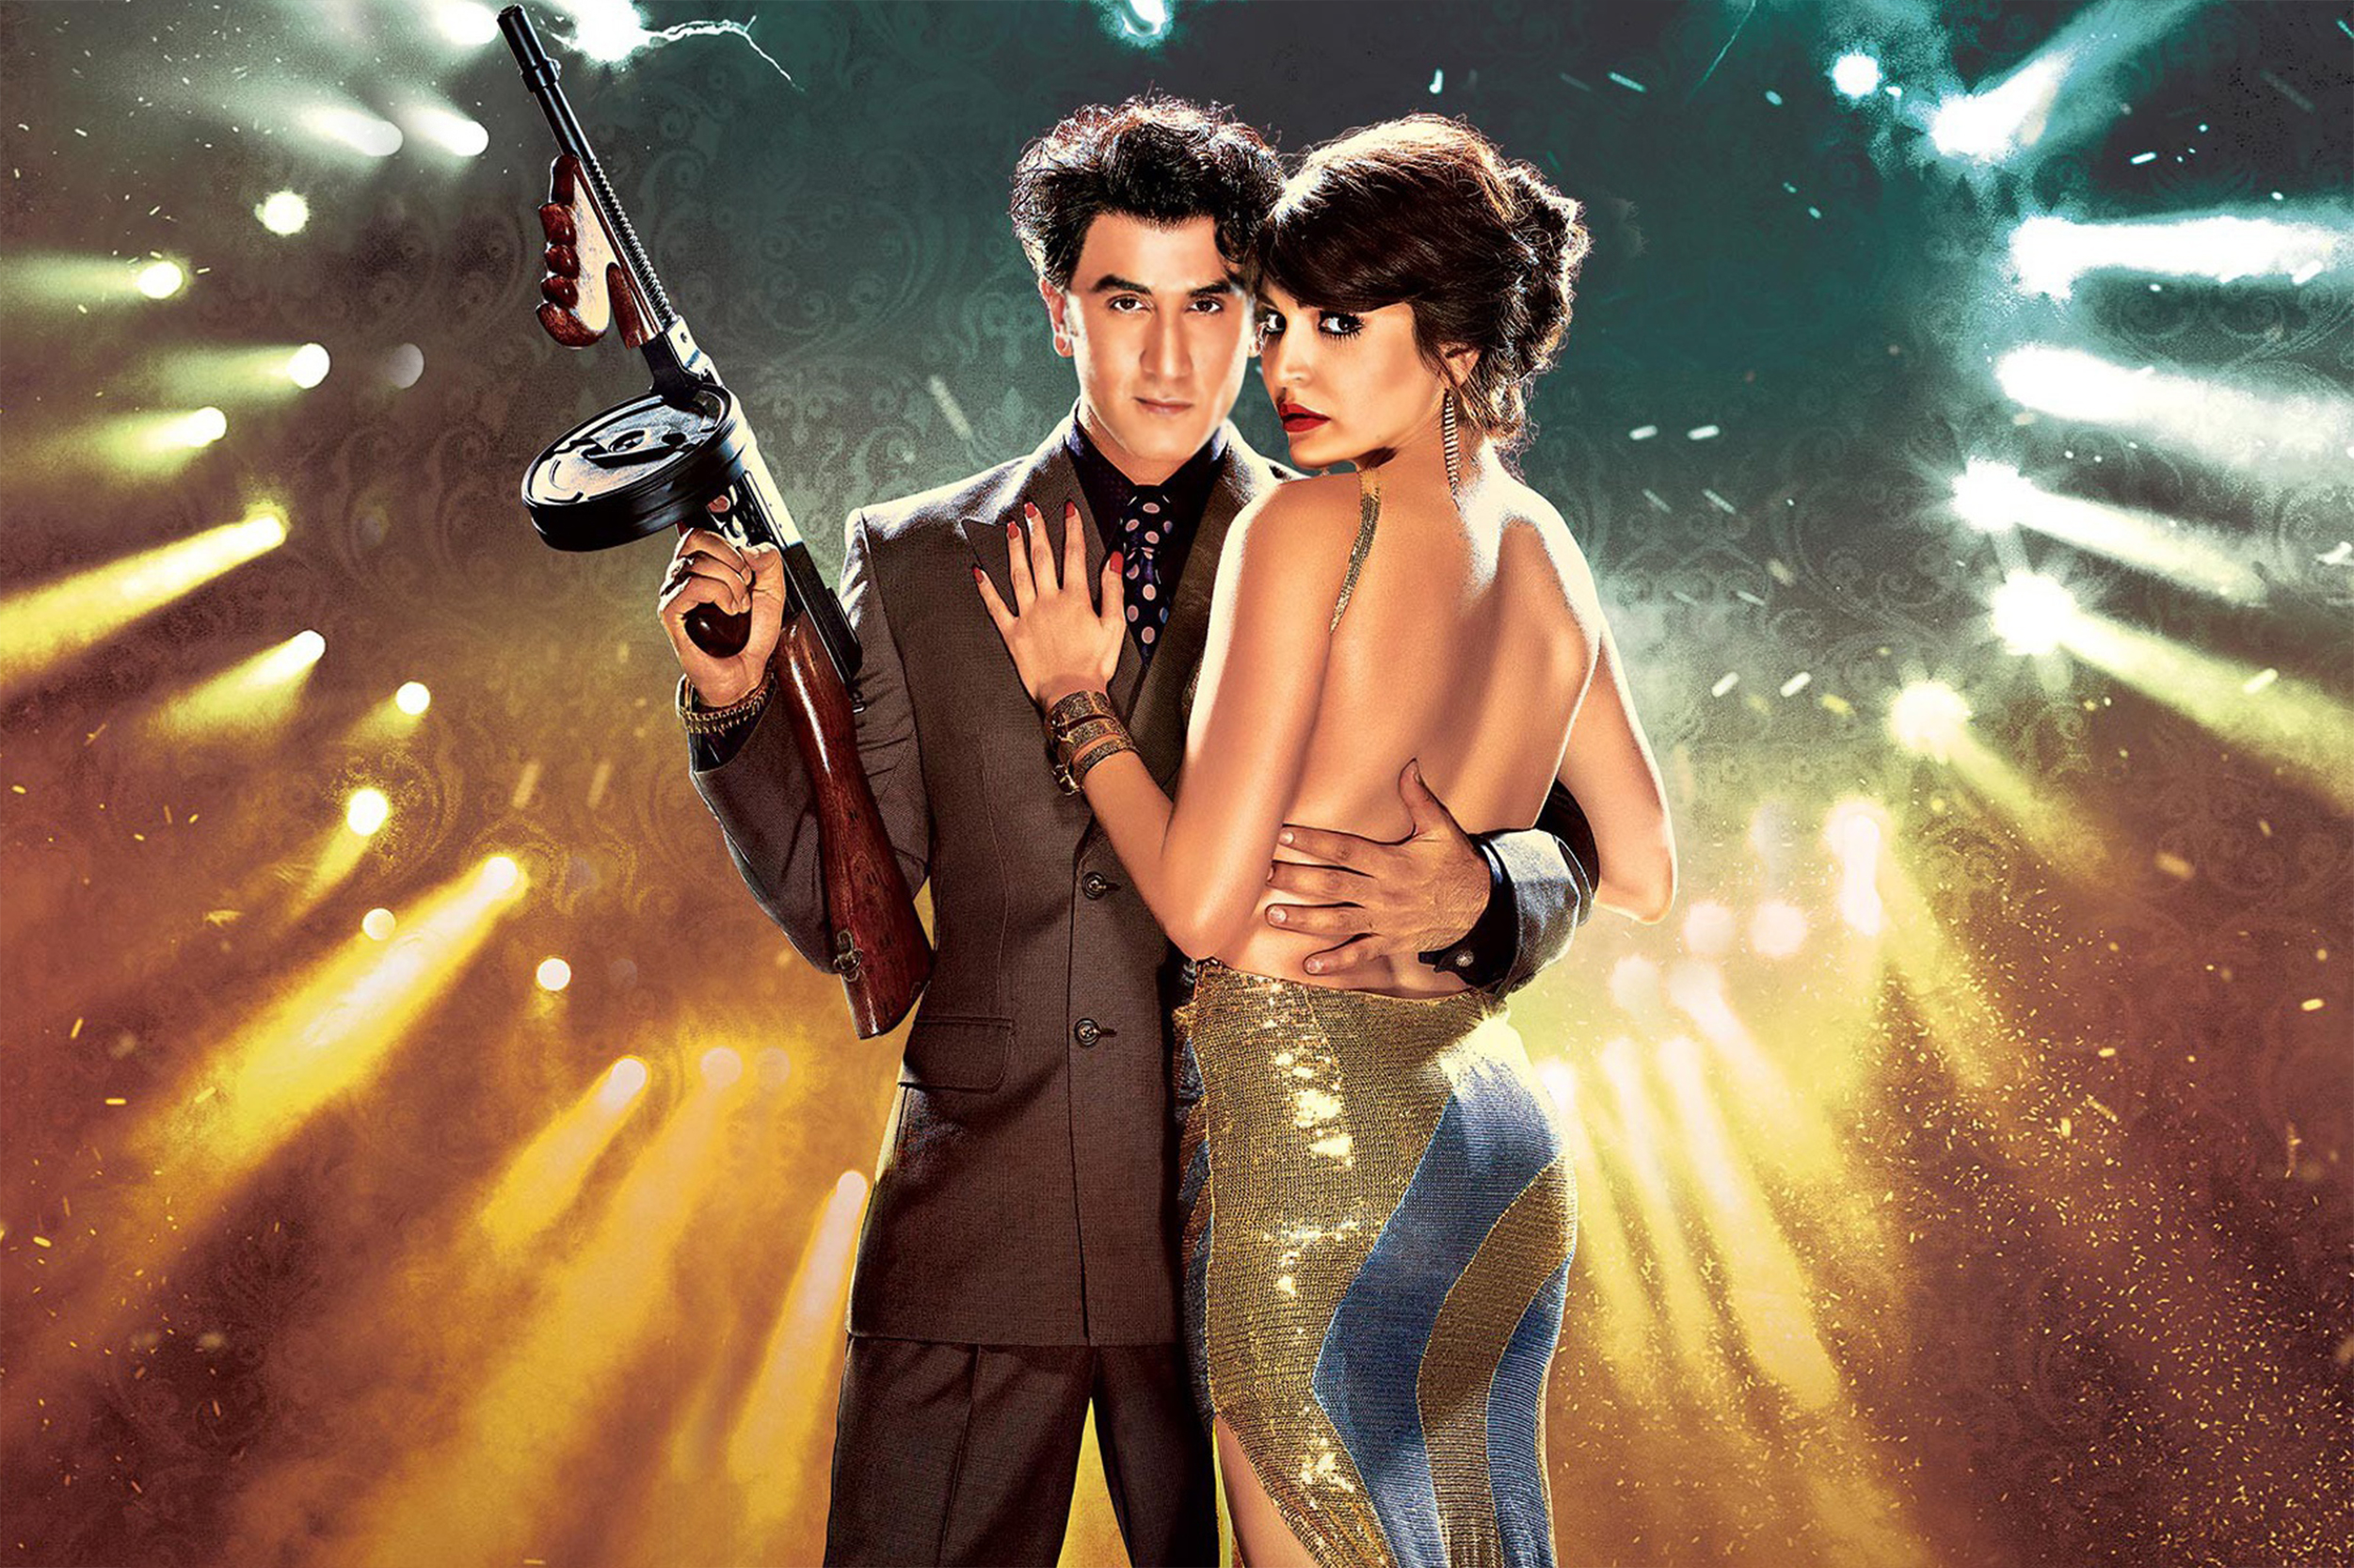 International Indian movies distribution 333 – Bombay Velvet